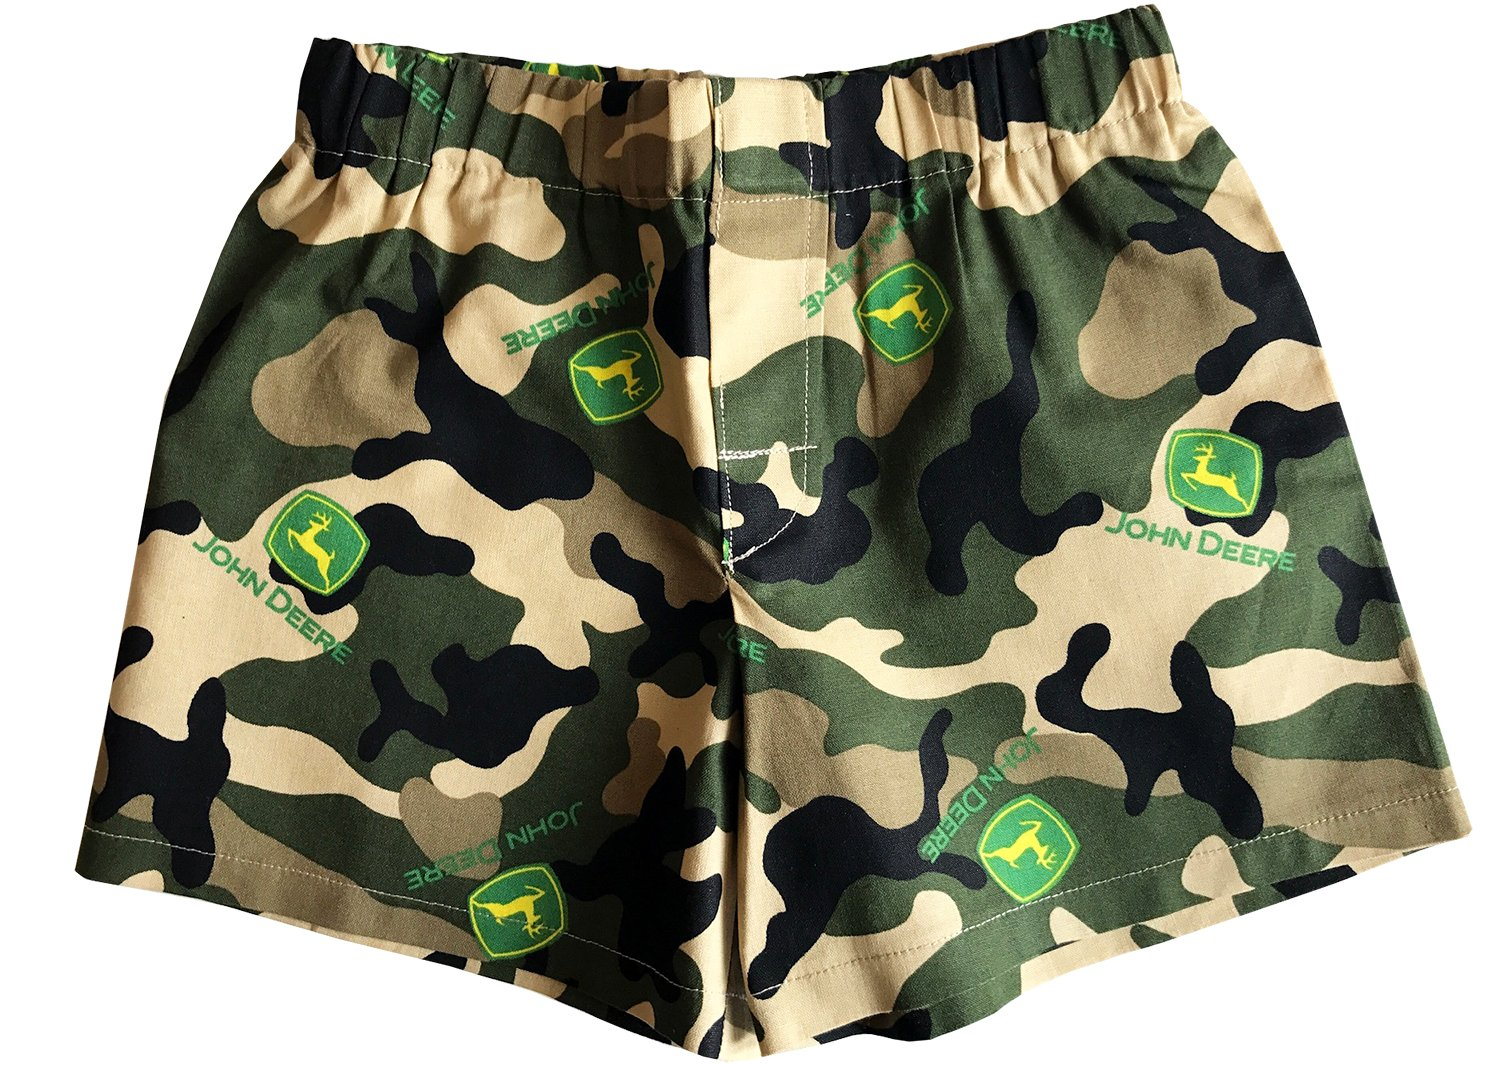 9d4f058659 Brand-new without tags handmade boy/girl boxer shorts. Great for Summer  wear over bathing suit or swim trunks. Cute underpants to go over  diapers.100% ...